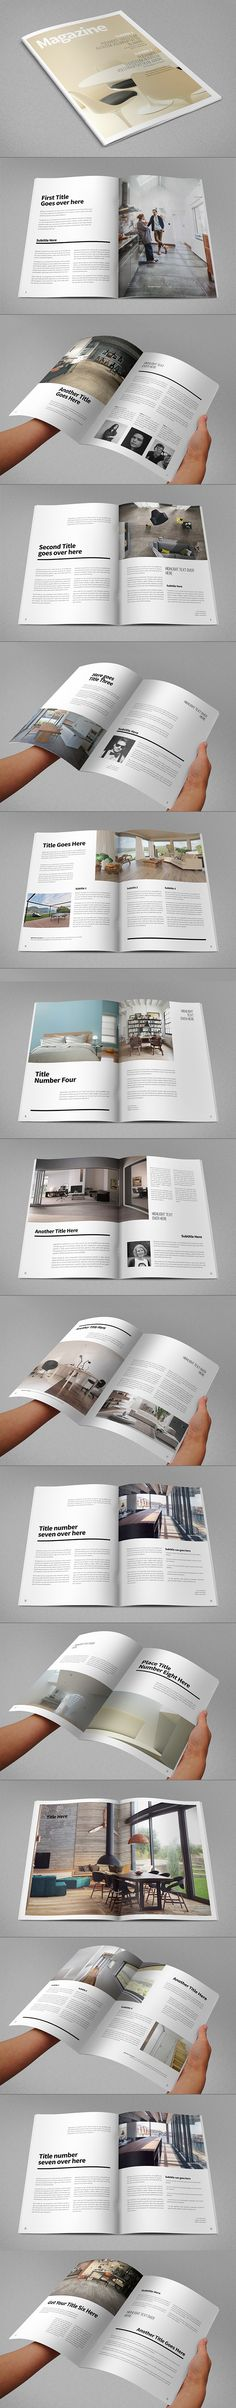 Minimal Design Magazine. Download here: http://graphicriver.net/item/minimal-design-magazine/10049560?ref=abradesign #design #magazine #mag